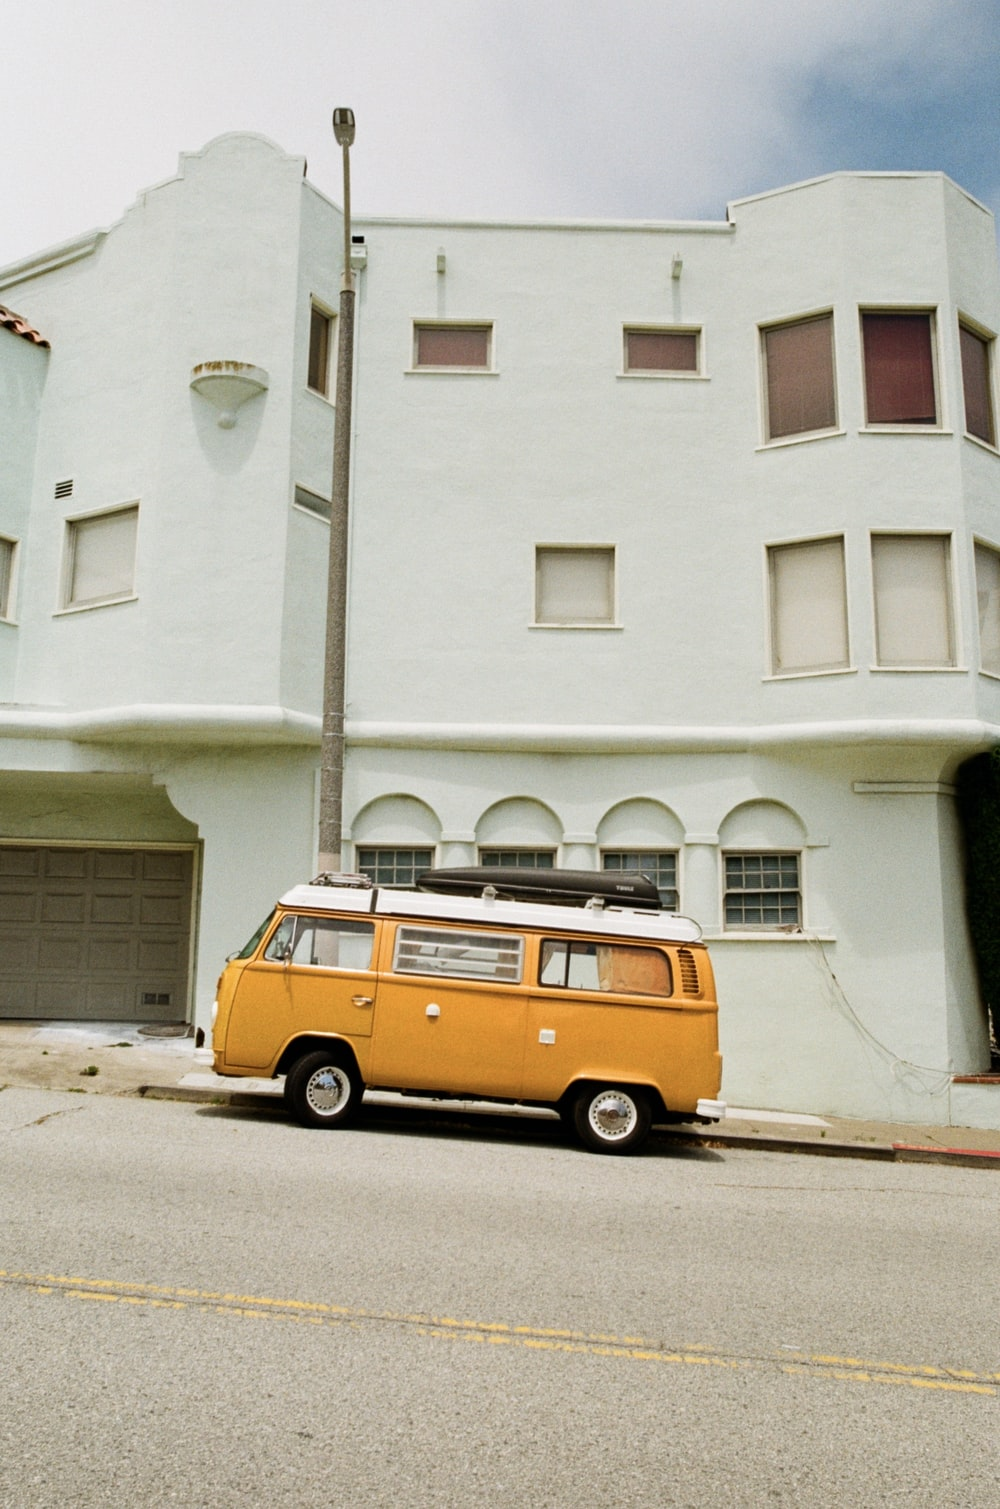 yellow and white van parked near white building